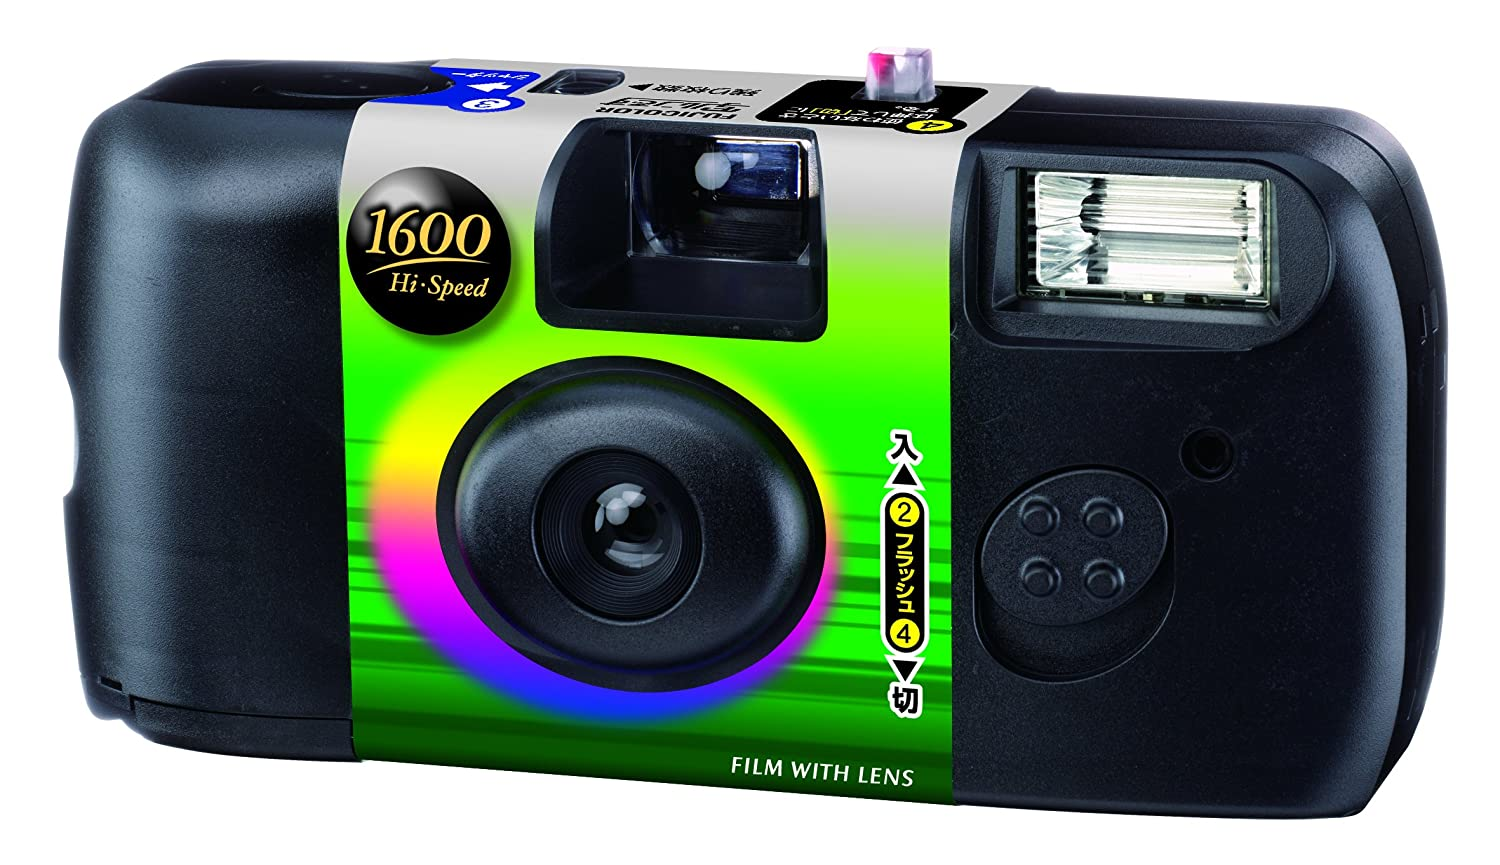 Amazon.com : FUJIFILM Disposable Camera Uturundesu 1600 High-speed ...